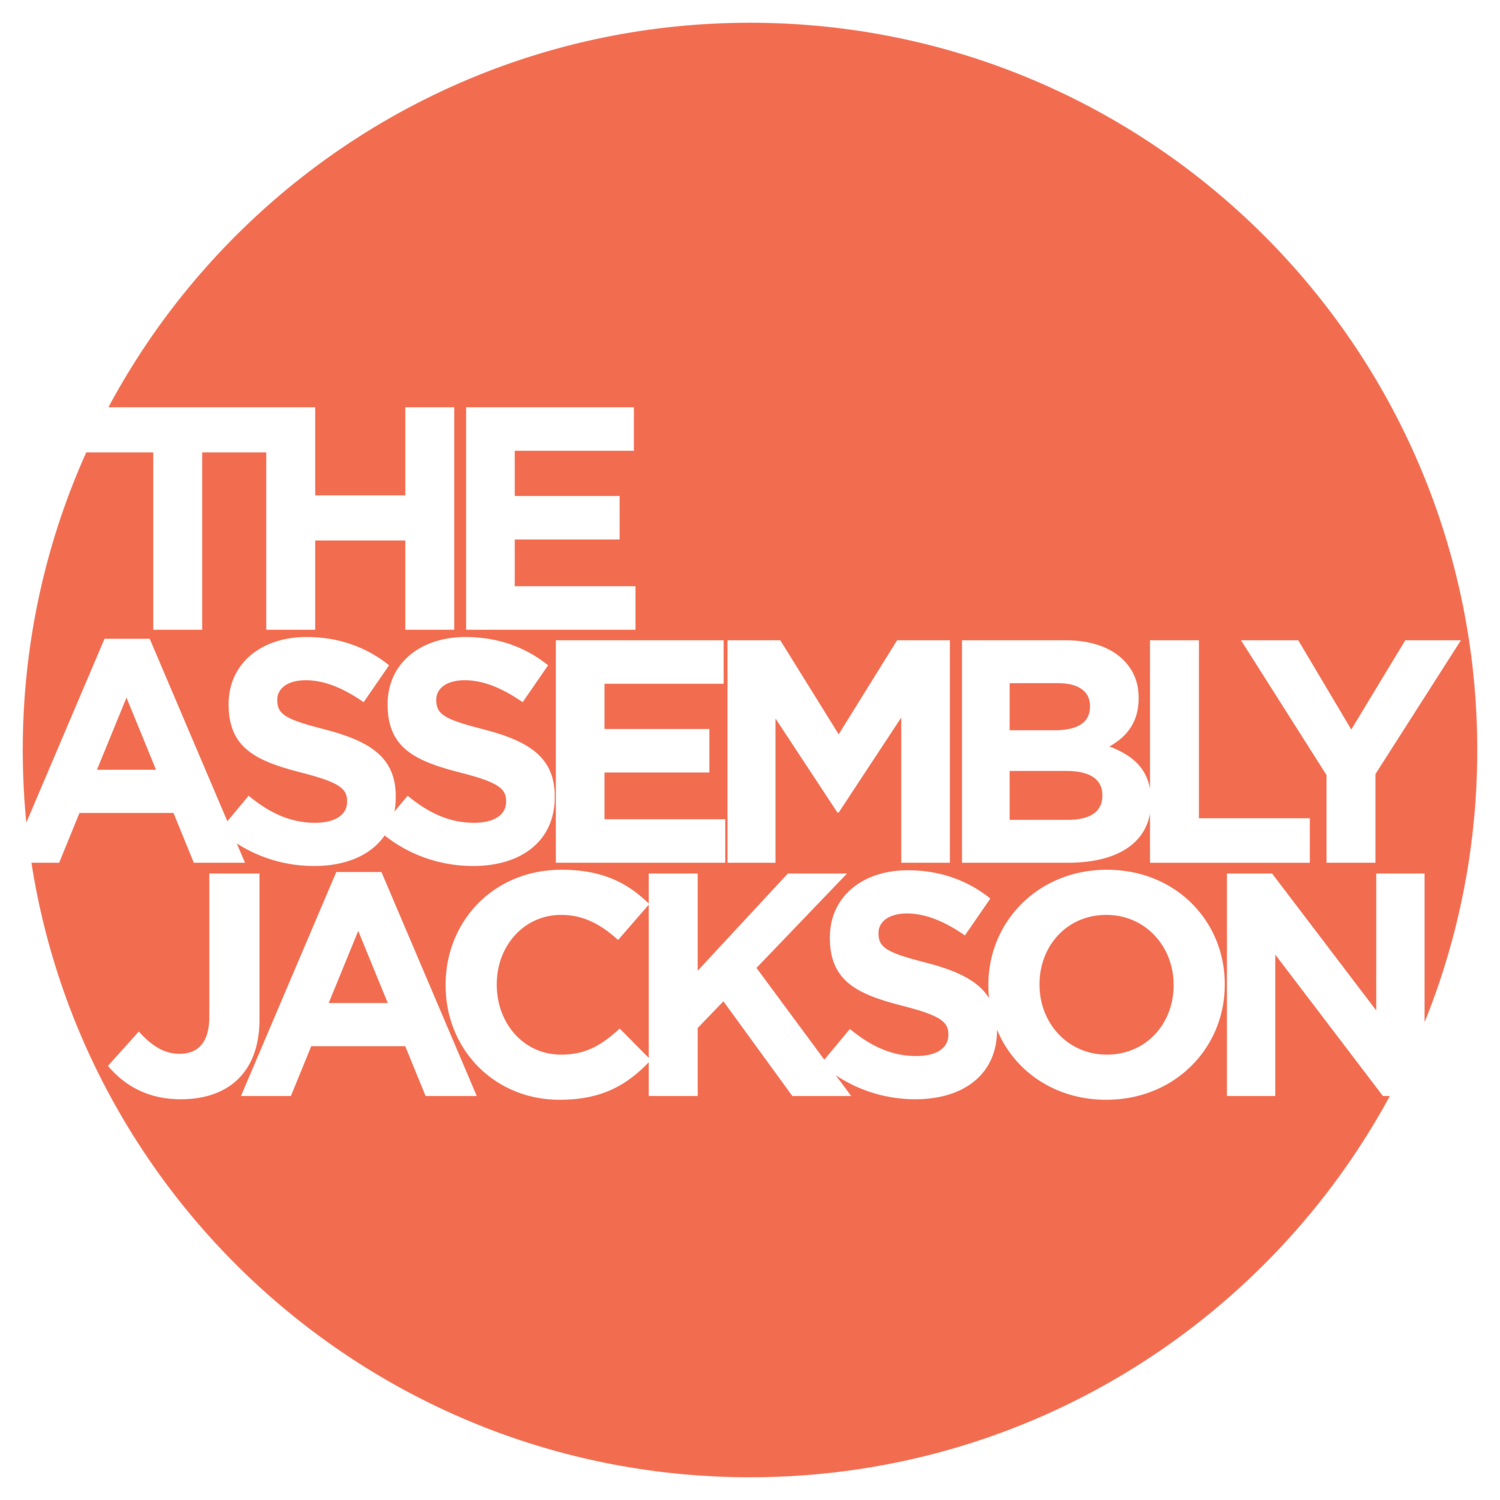 The Assembly of Jackson, an Assemblies of God (AG) church